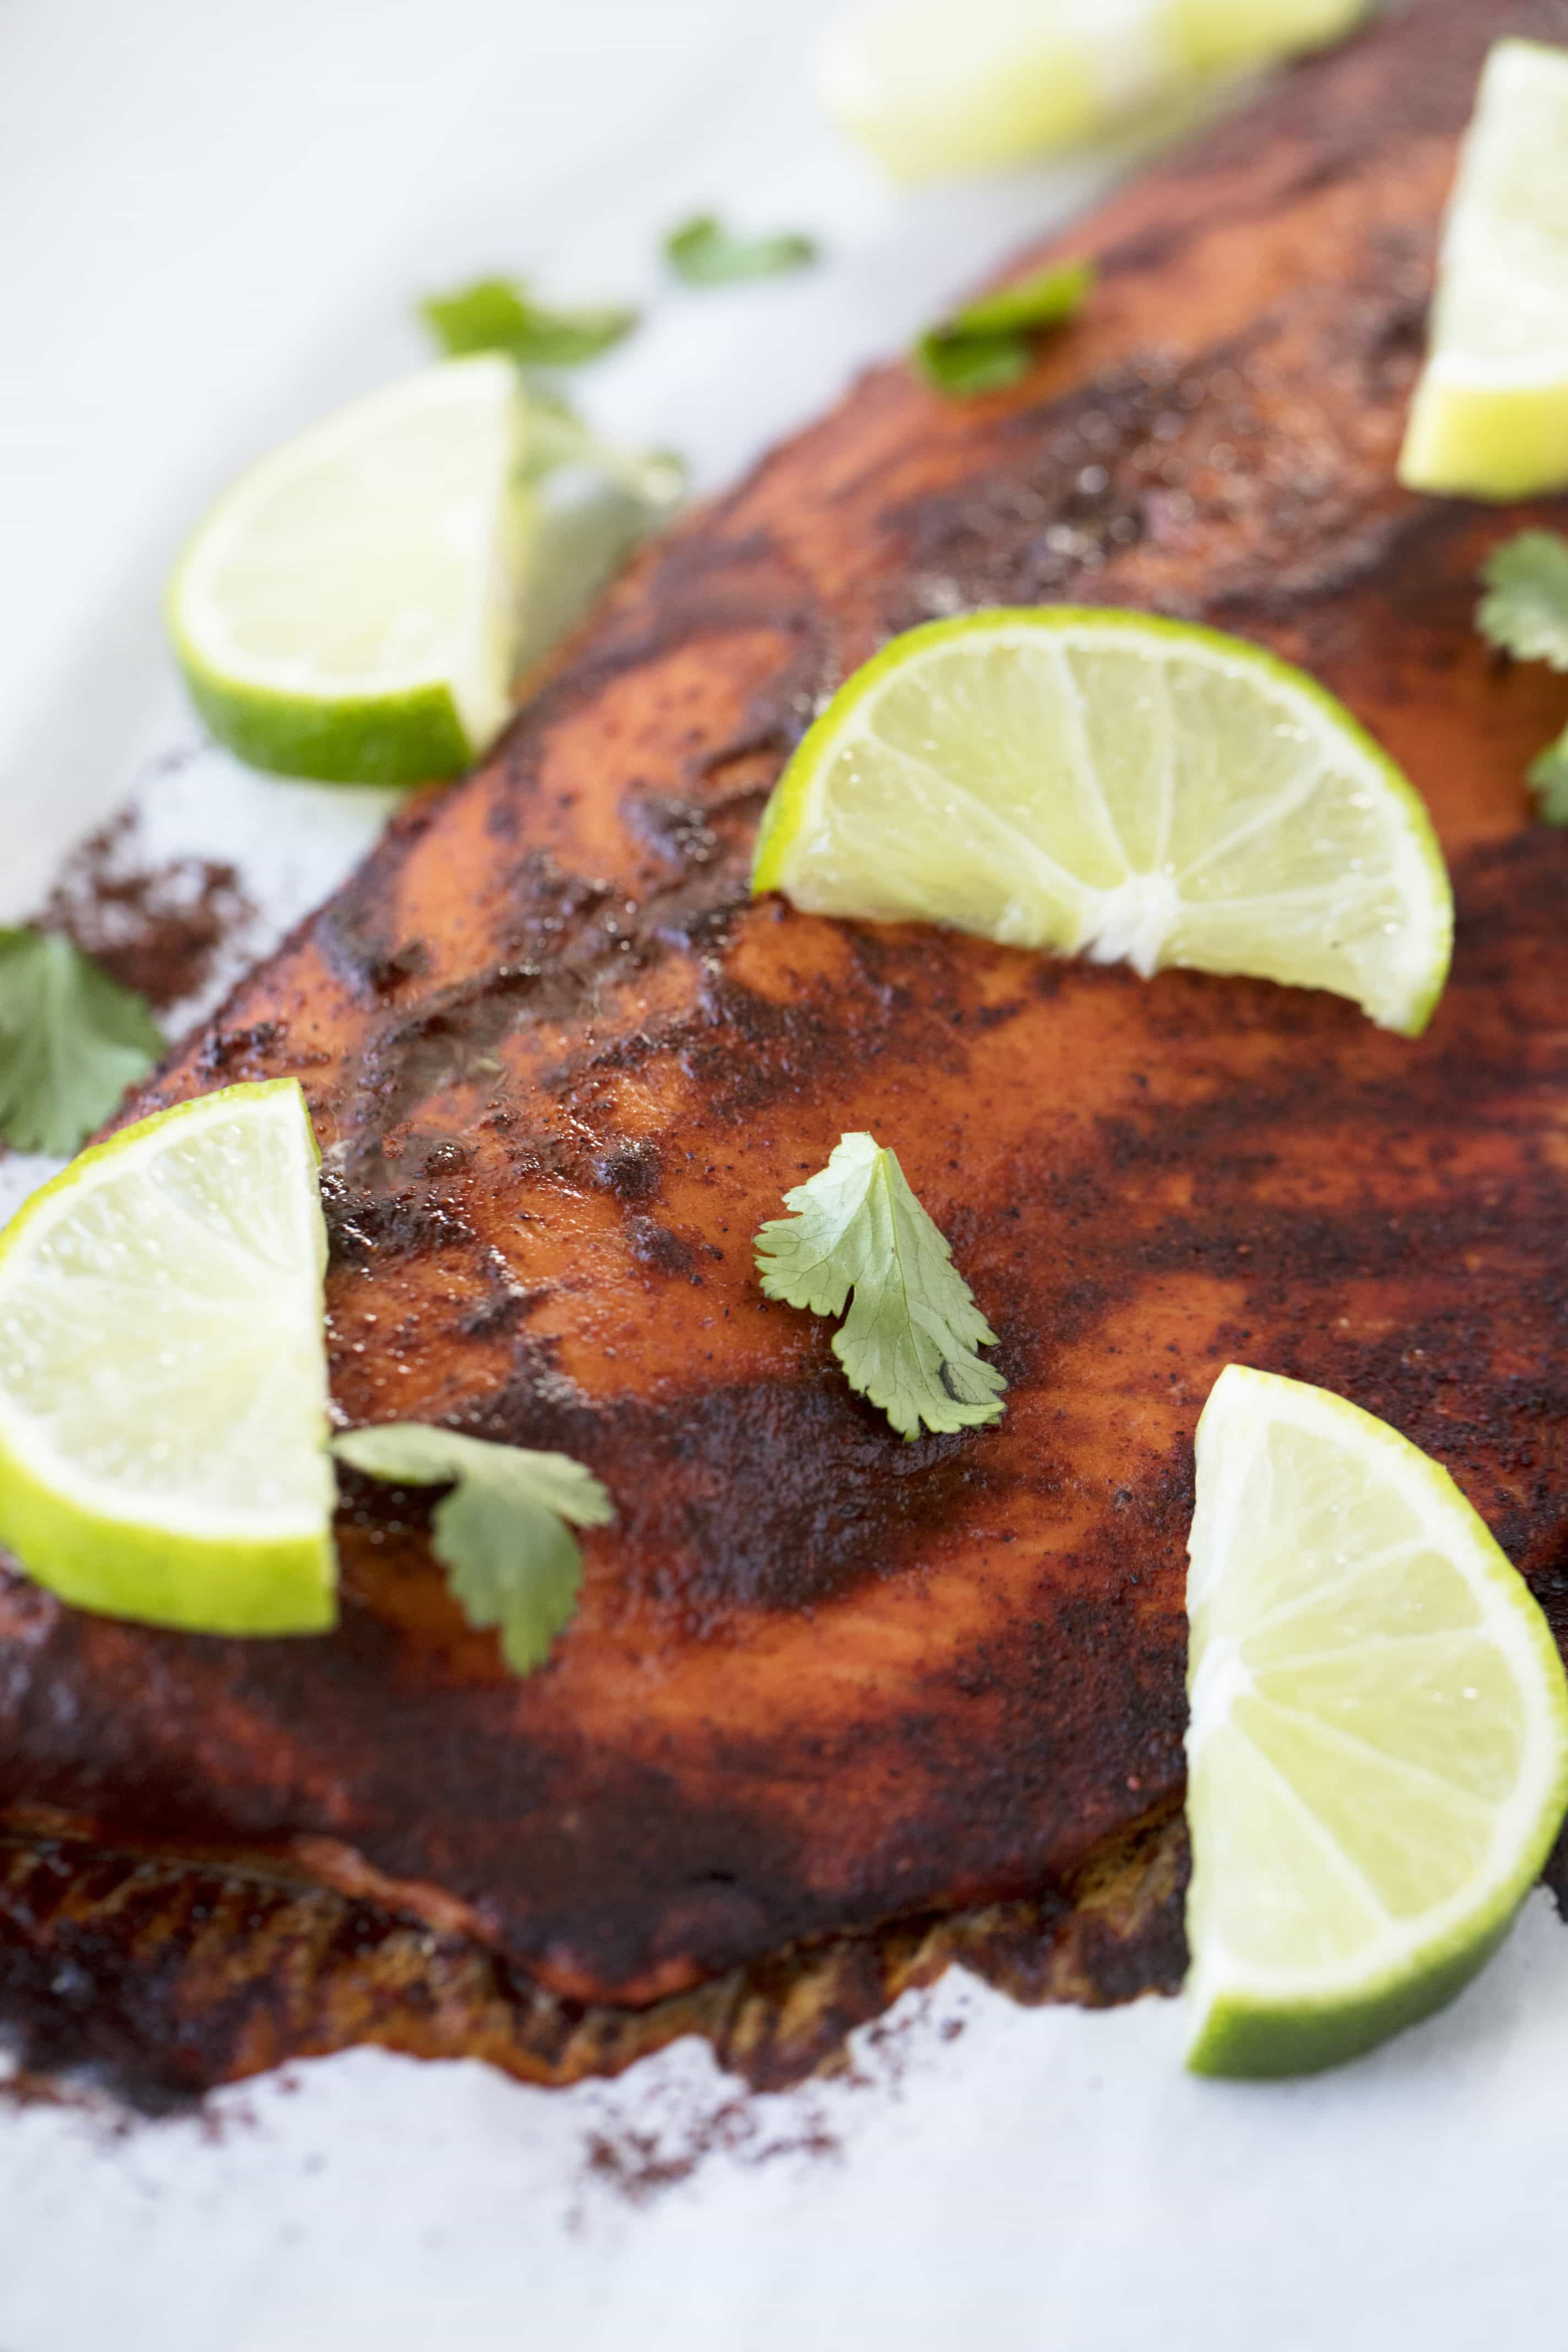 Baked Chili Lime Salmon with sliced limes on it.